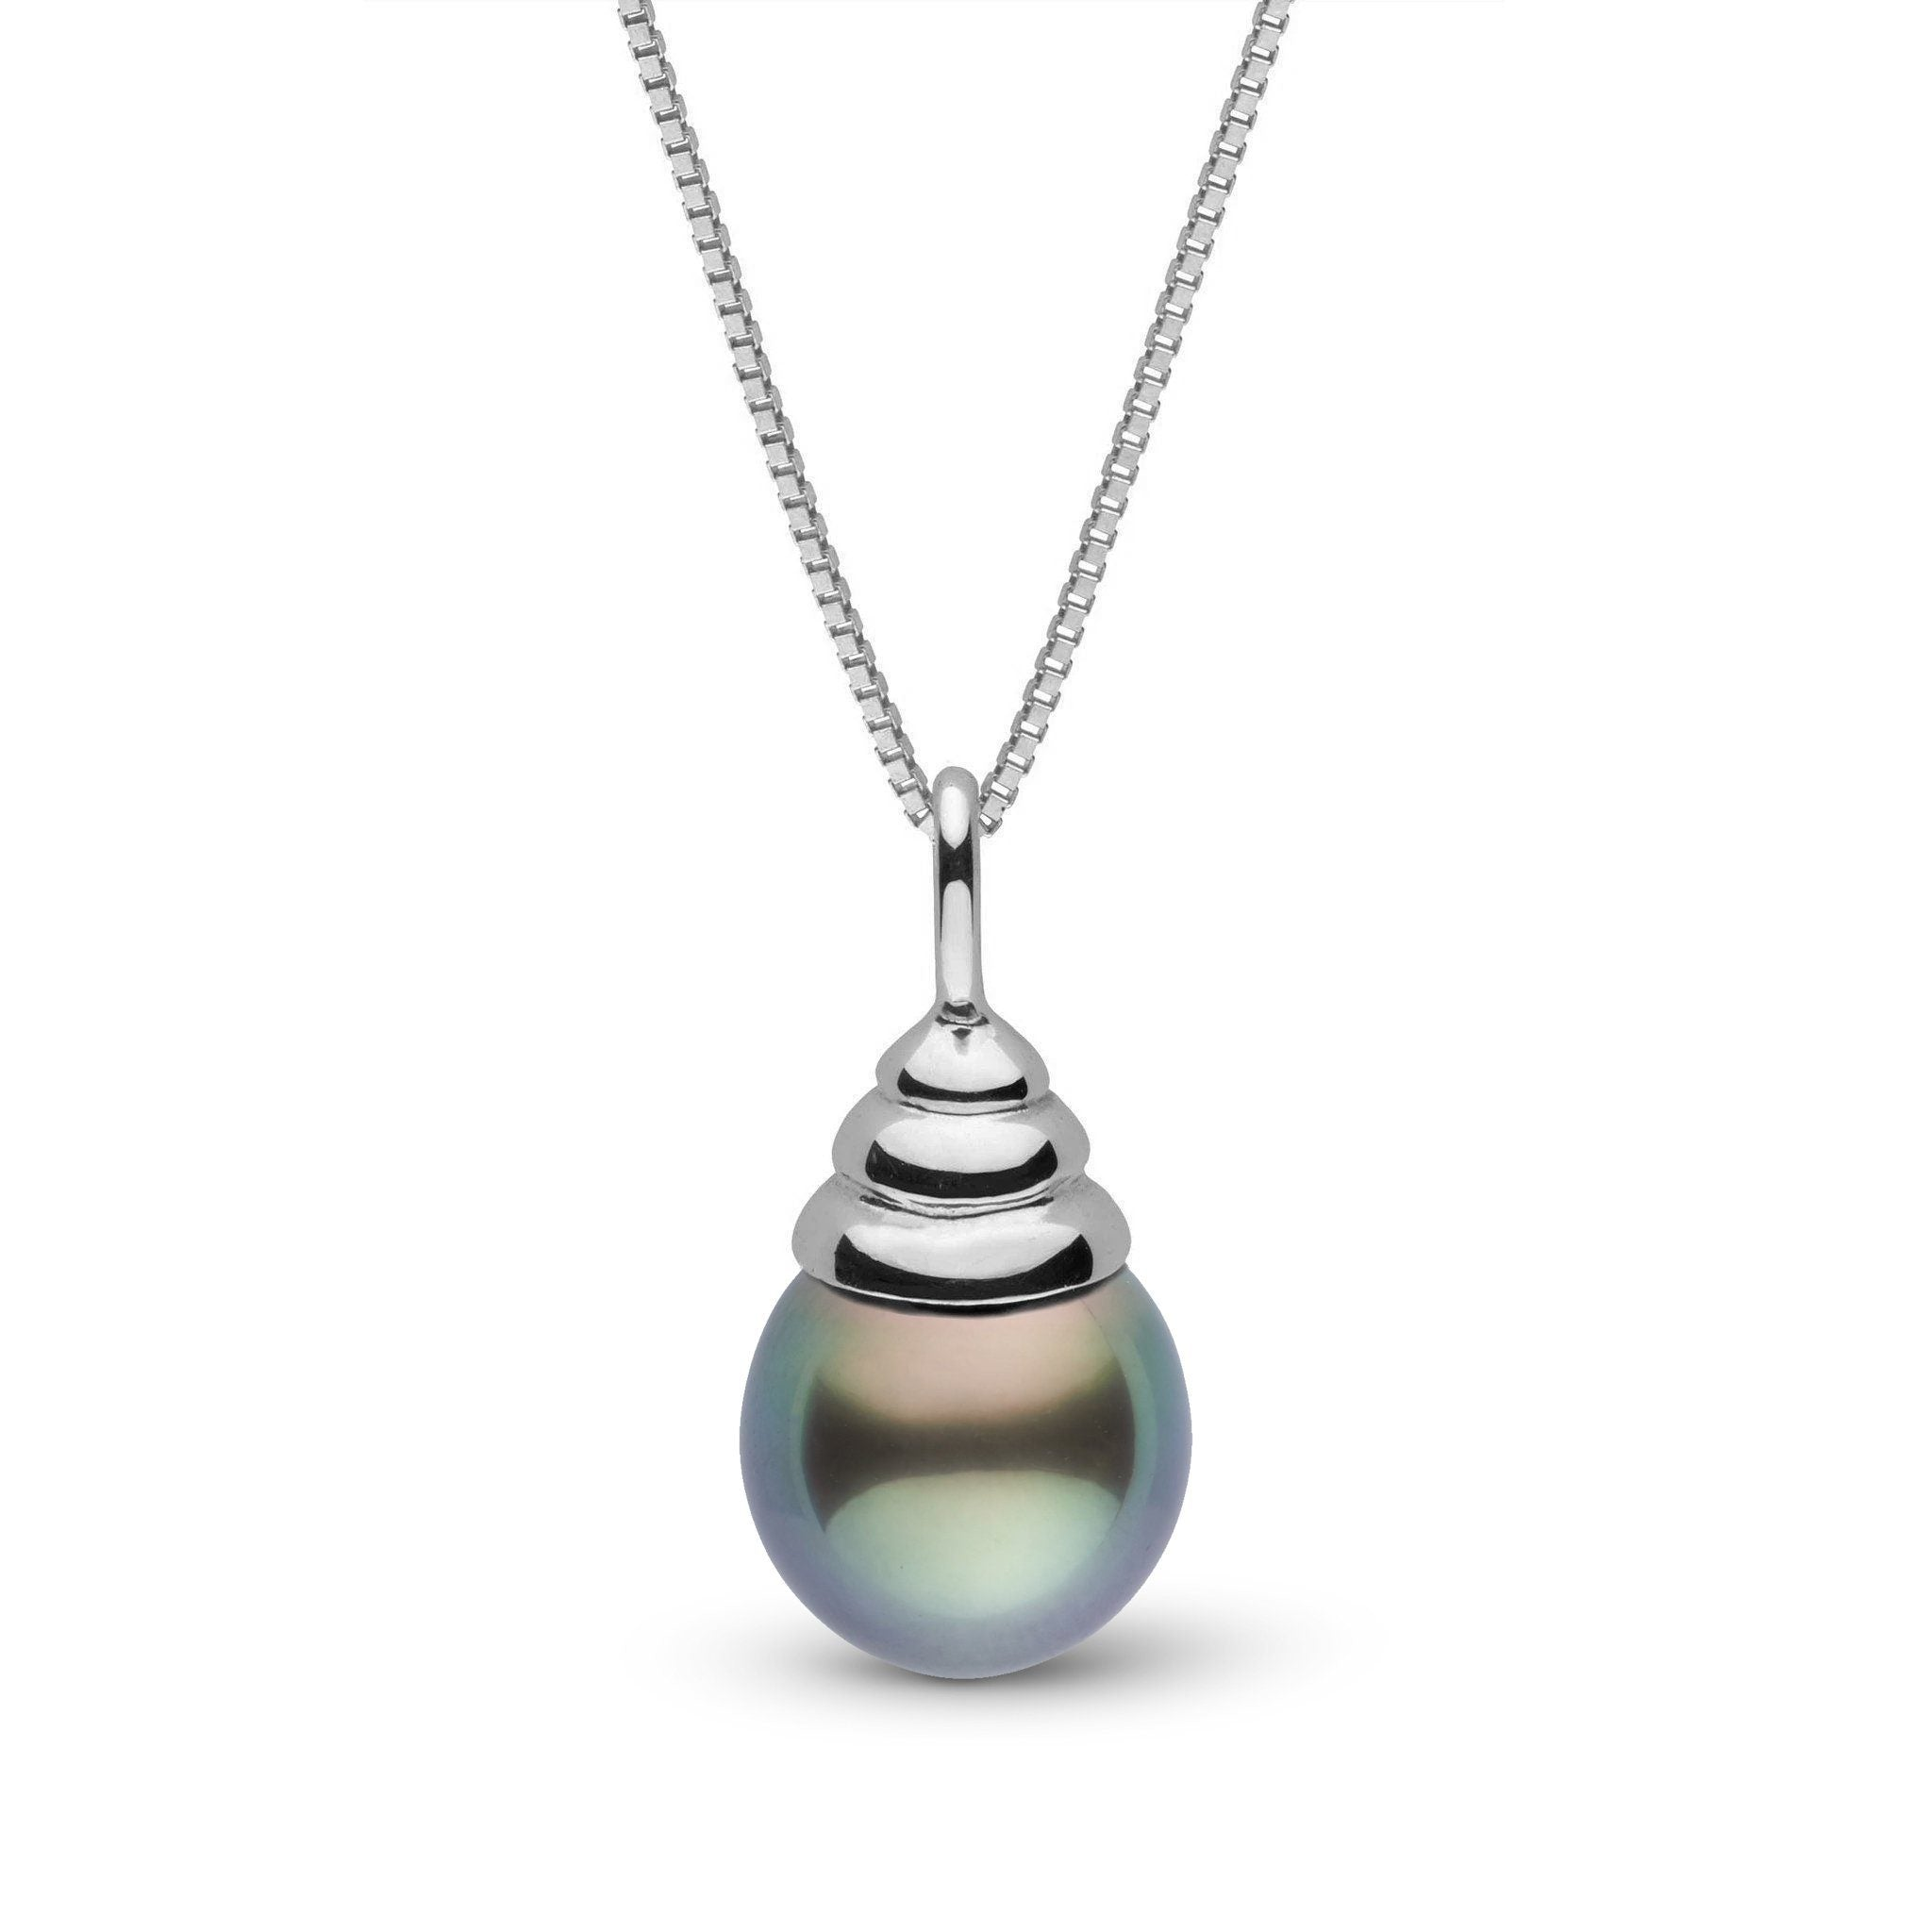 Honey Collection Tahitian Drop 9.0-10.0 mm Pearl Pendant